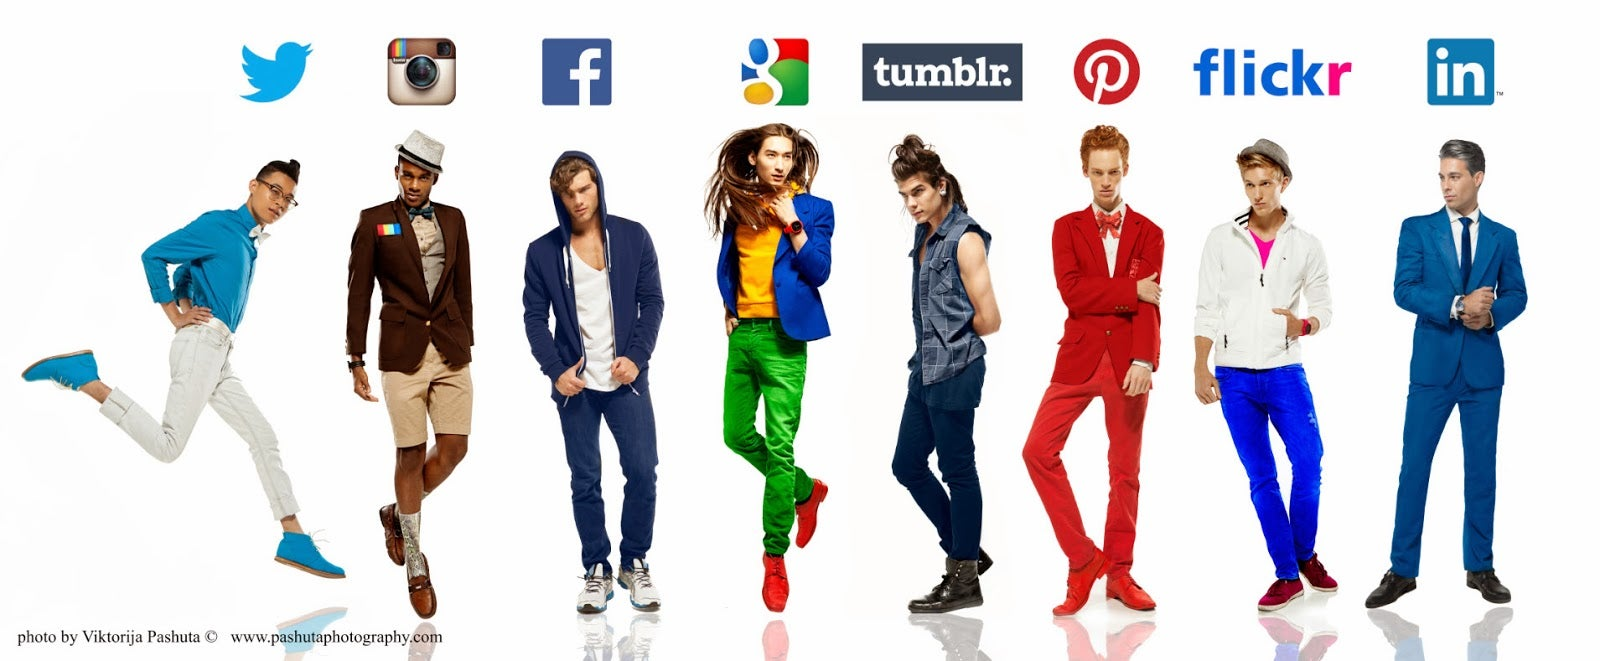 What If We Dressed Like Our Social Networks?